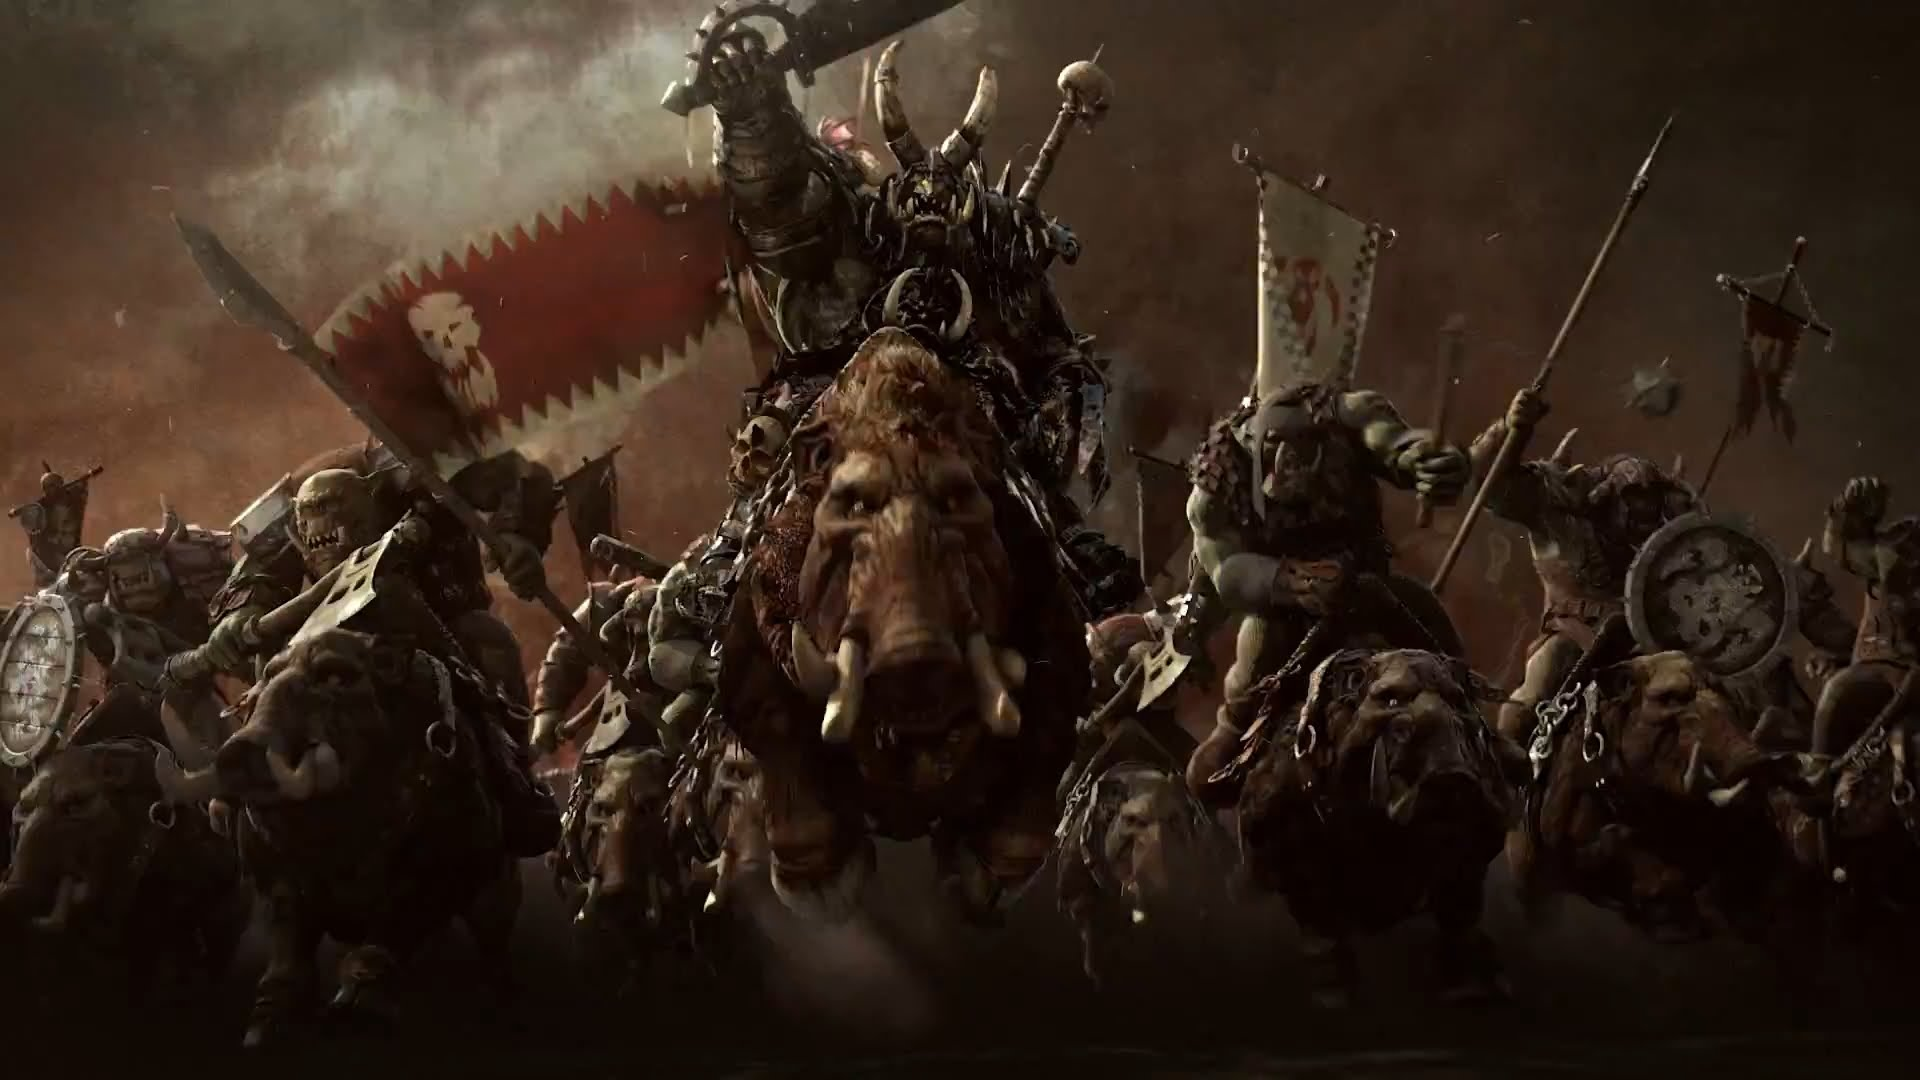 Total_War_Warhammer_Chaos_Race_Pre-Order_Controversy[1]